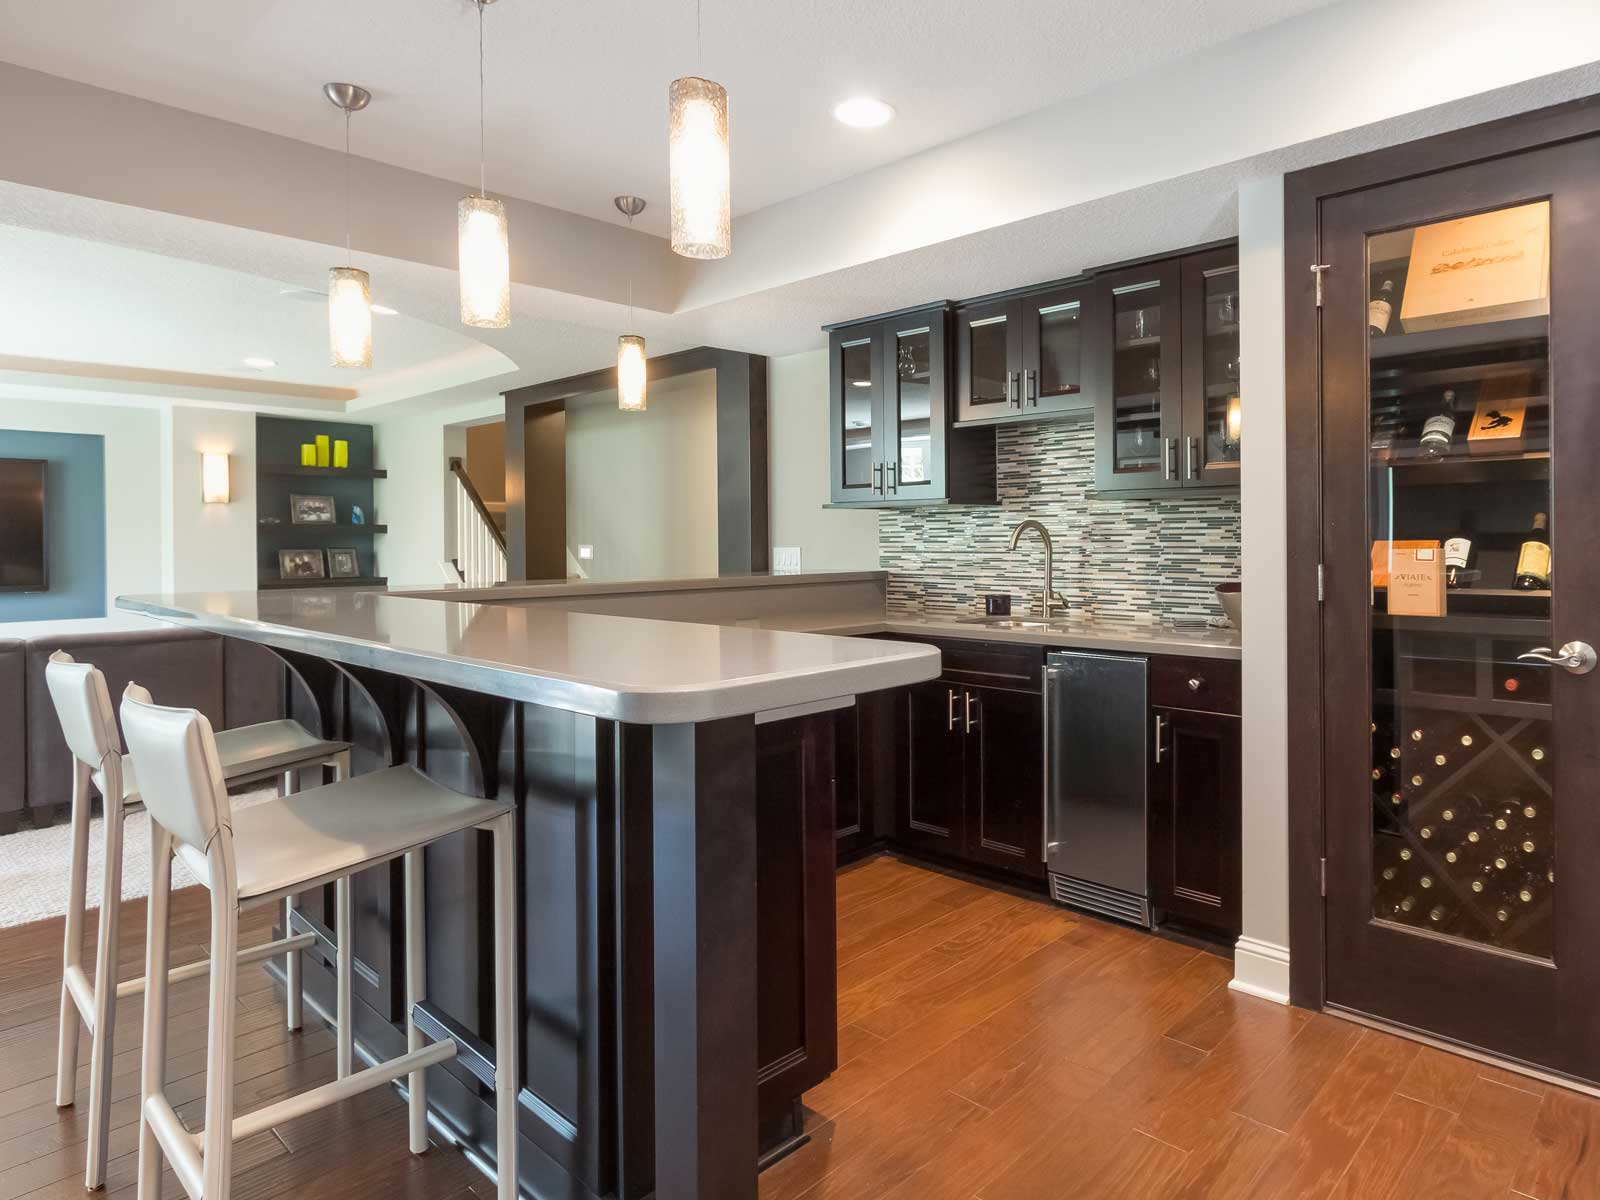 fairfax va home remodeling services